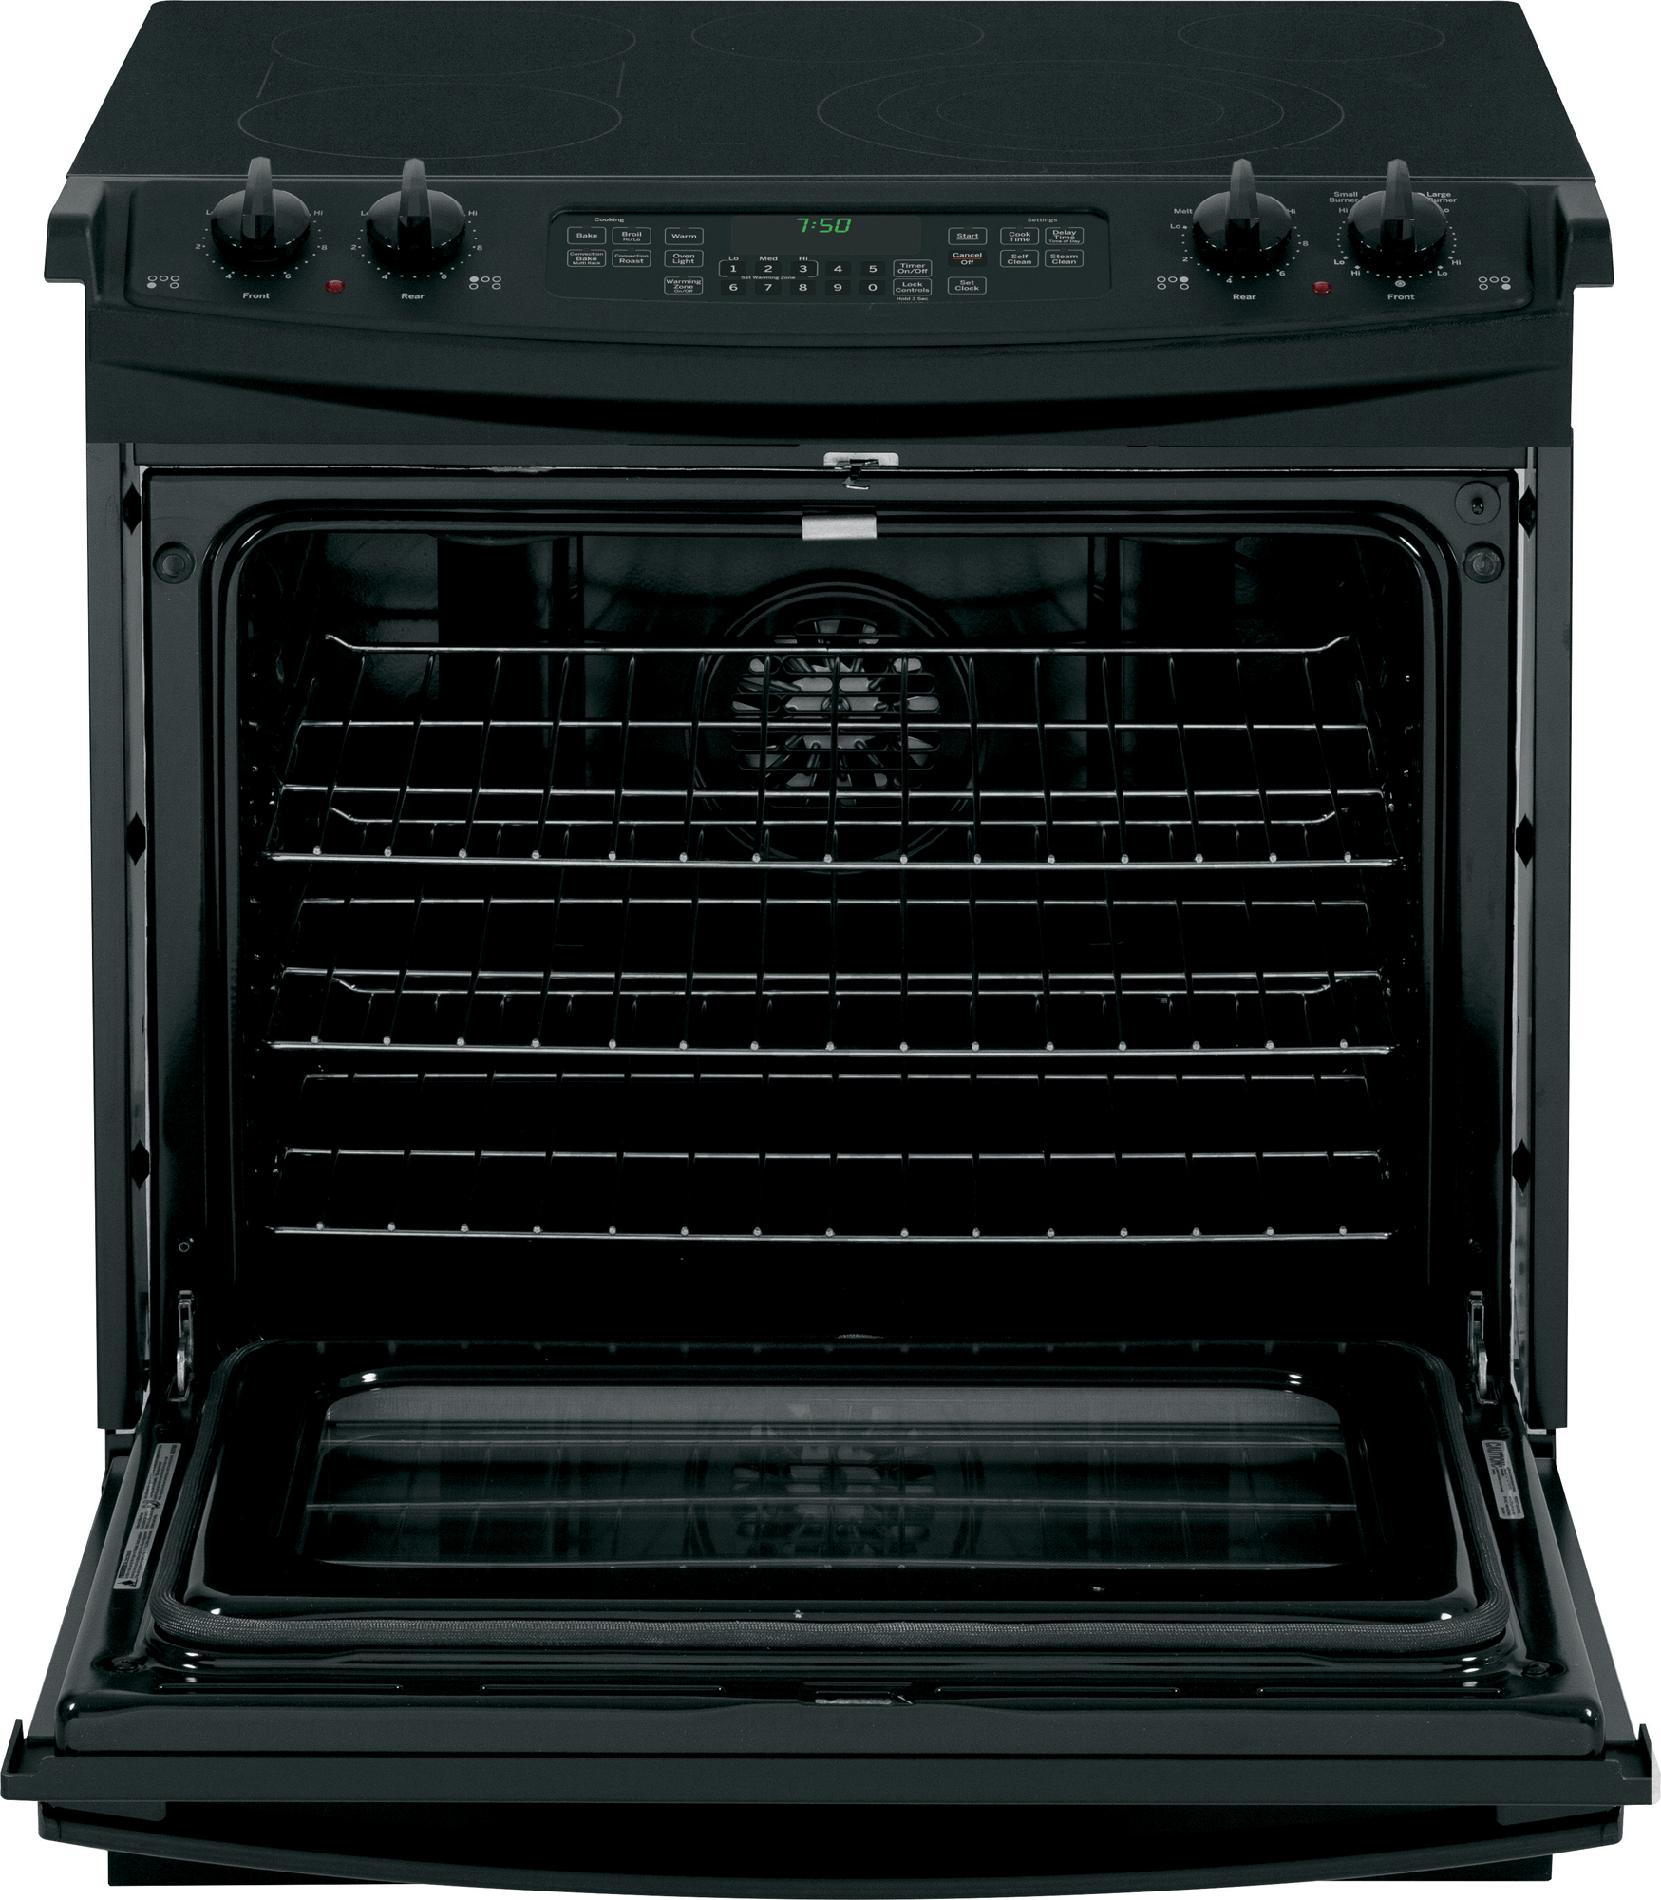 "GE Appliances JS750DFBB 30"" Slide-In Electric Range w/ True Convection - Black"